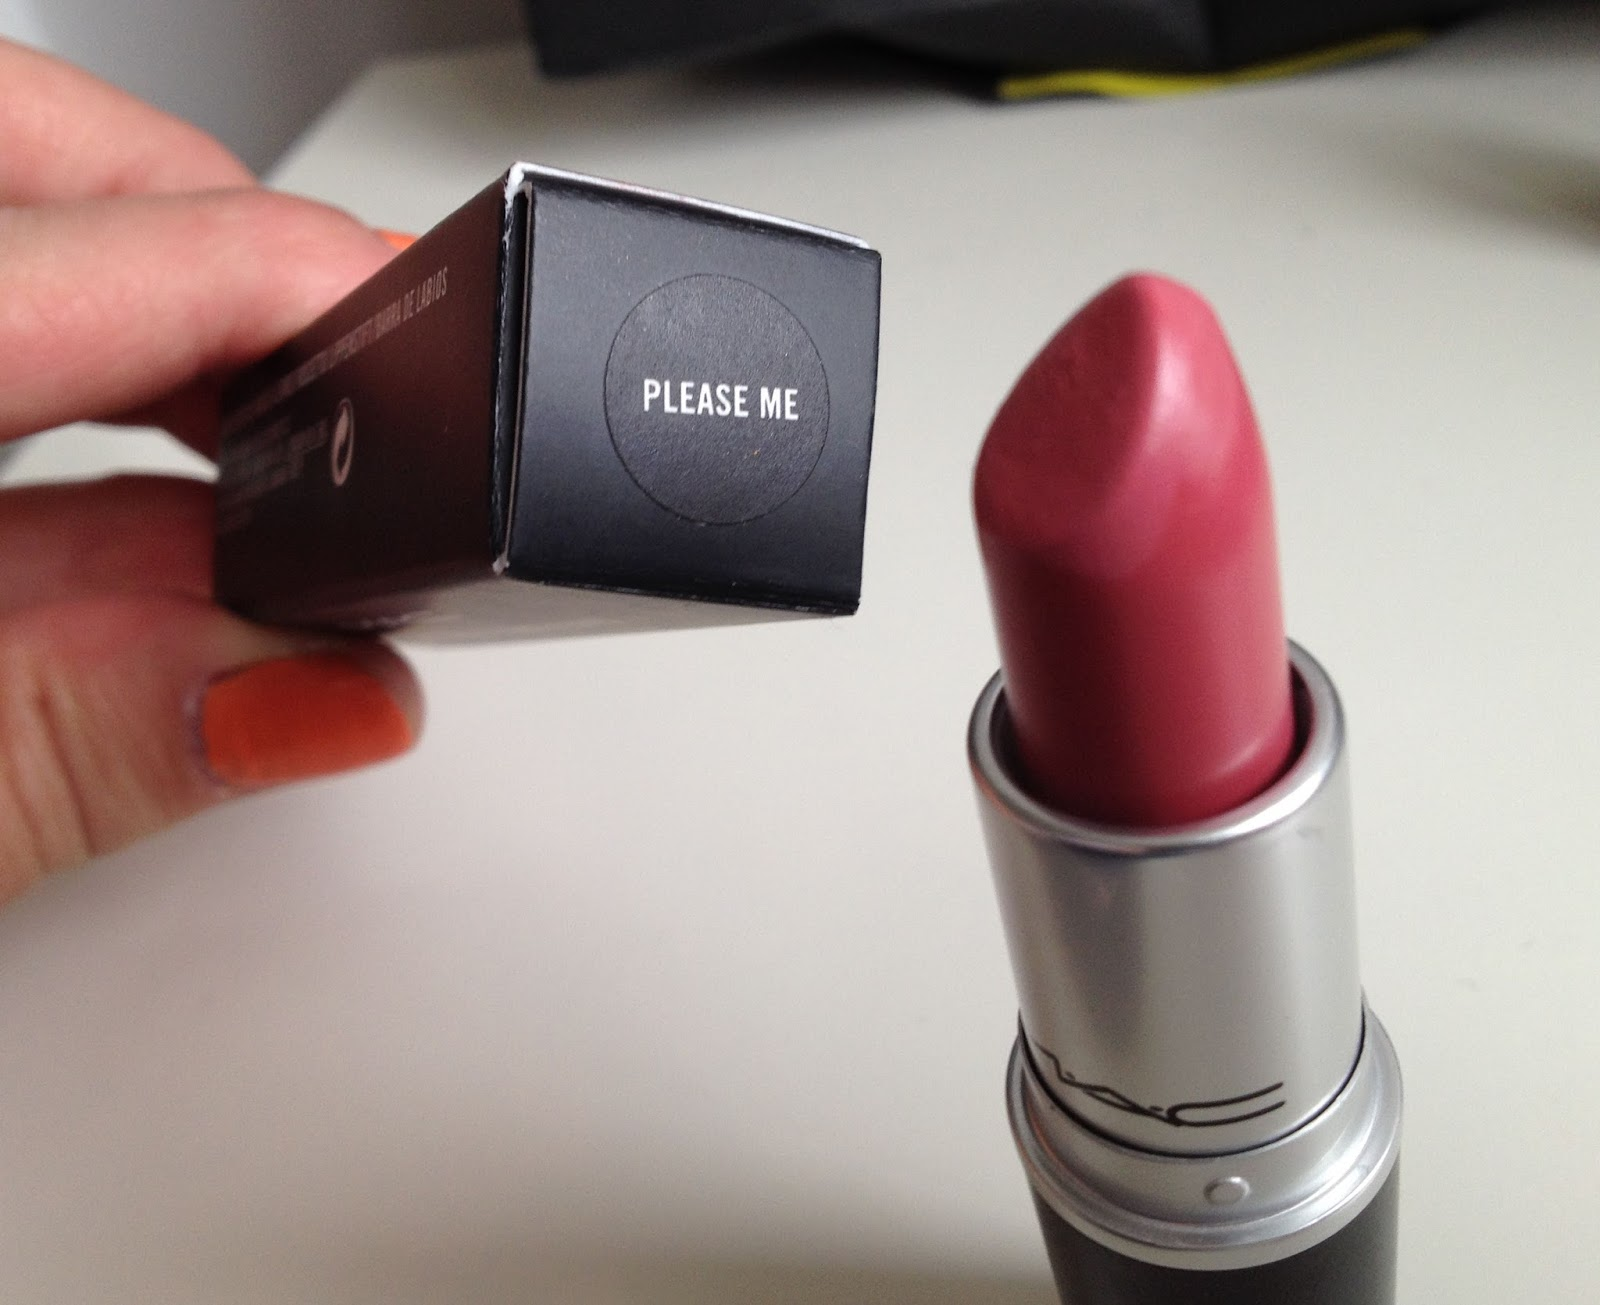 Top My Beautopia: MAC Monday: MAC Please Me matte lipstick LS06